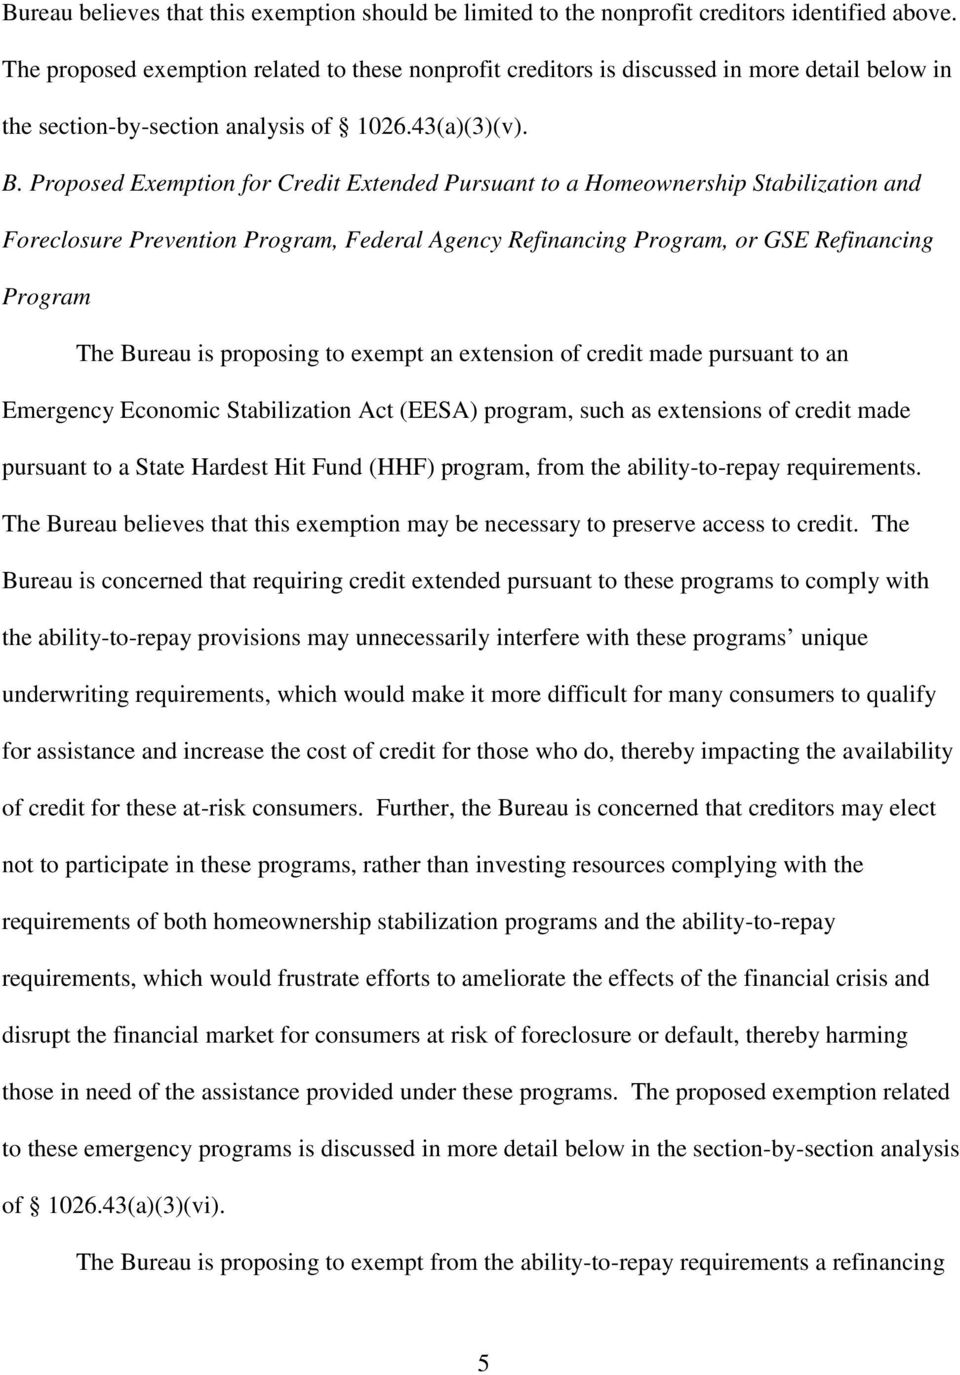 Proposed Exemption for Credit Extended Pursuant to a Homeownership Stabilization and Foreclosure Prevention Program, Federal Agency Refinancing Program, or GSE Refinancing Program The Bureau is